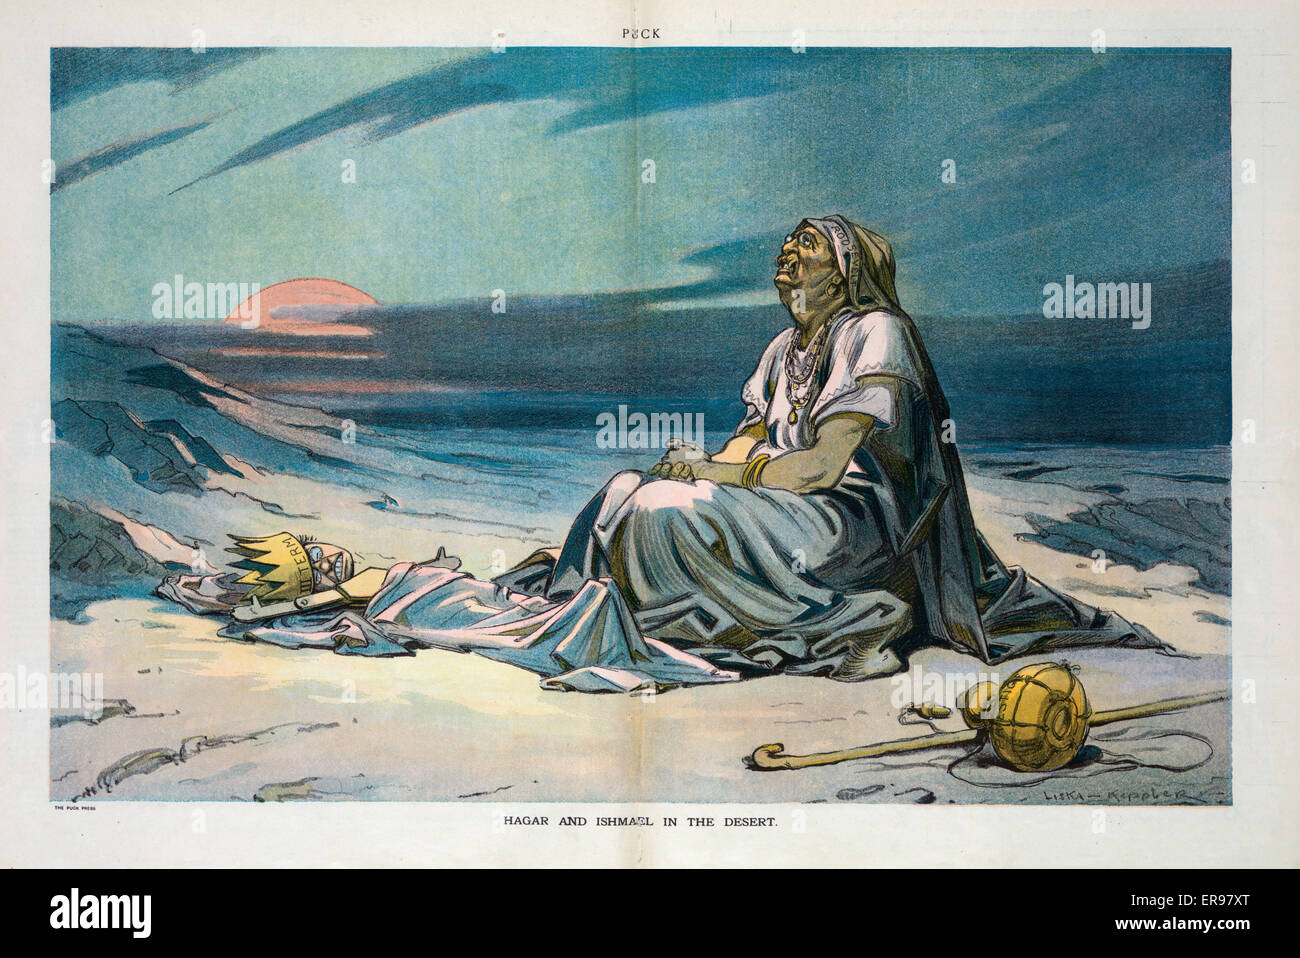 Hagar and Ishmael in the desert. Illustration shows Theodore Roosevelt as  the biblical Hagar in a moment of despair, sitting on the ground next to a  wooden ...